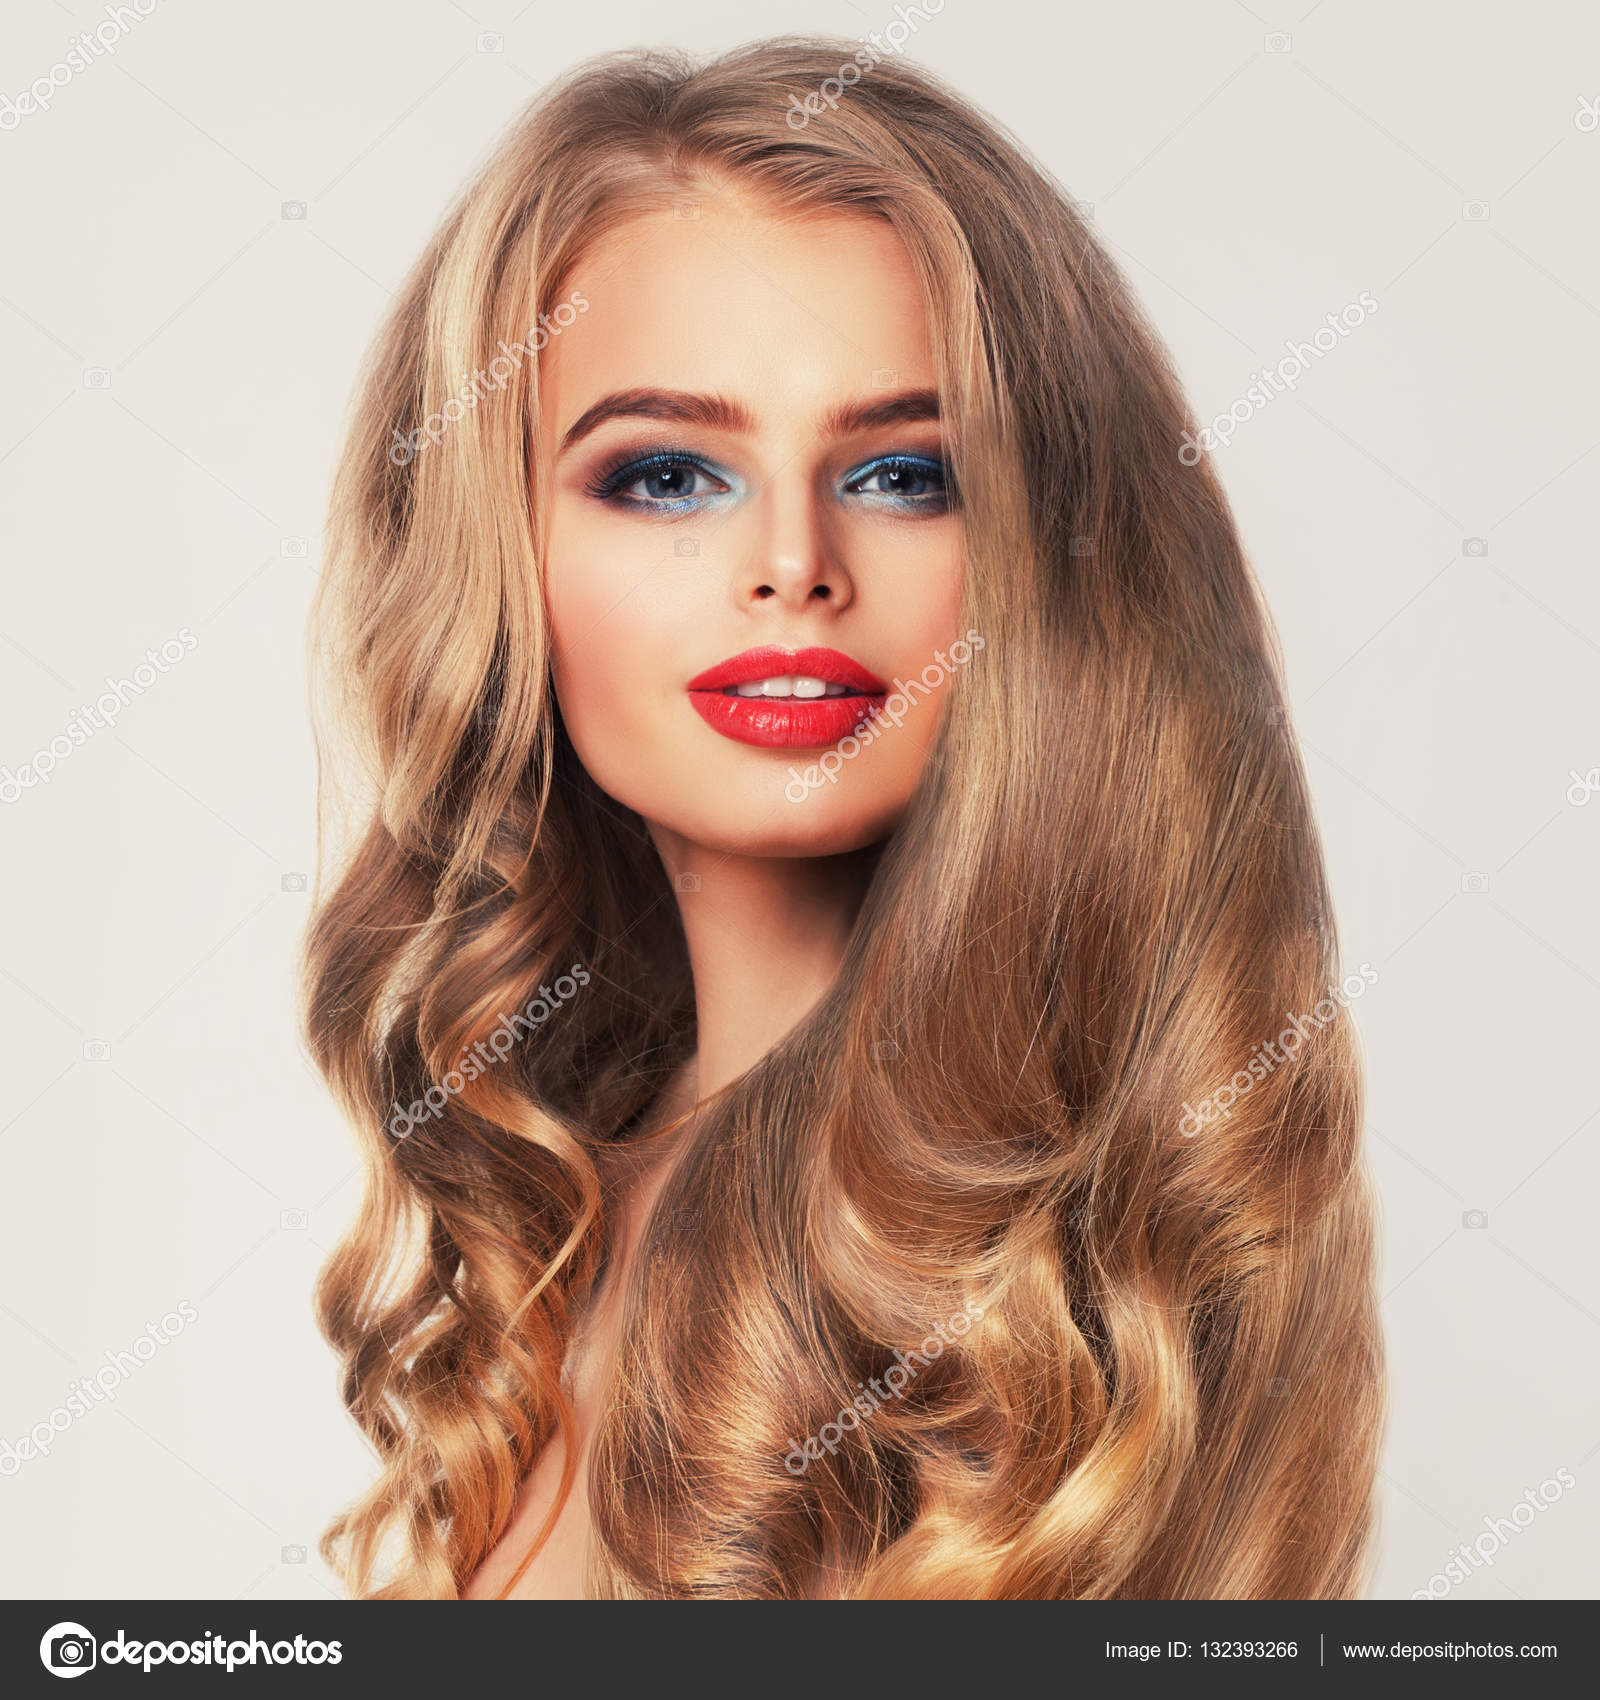 Healthy Woman With Long Blonde Hair And Makeup. Permed Hairstyle U2014 Stock  Photo